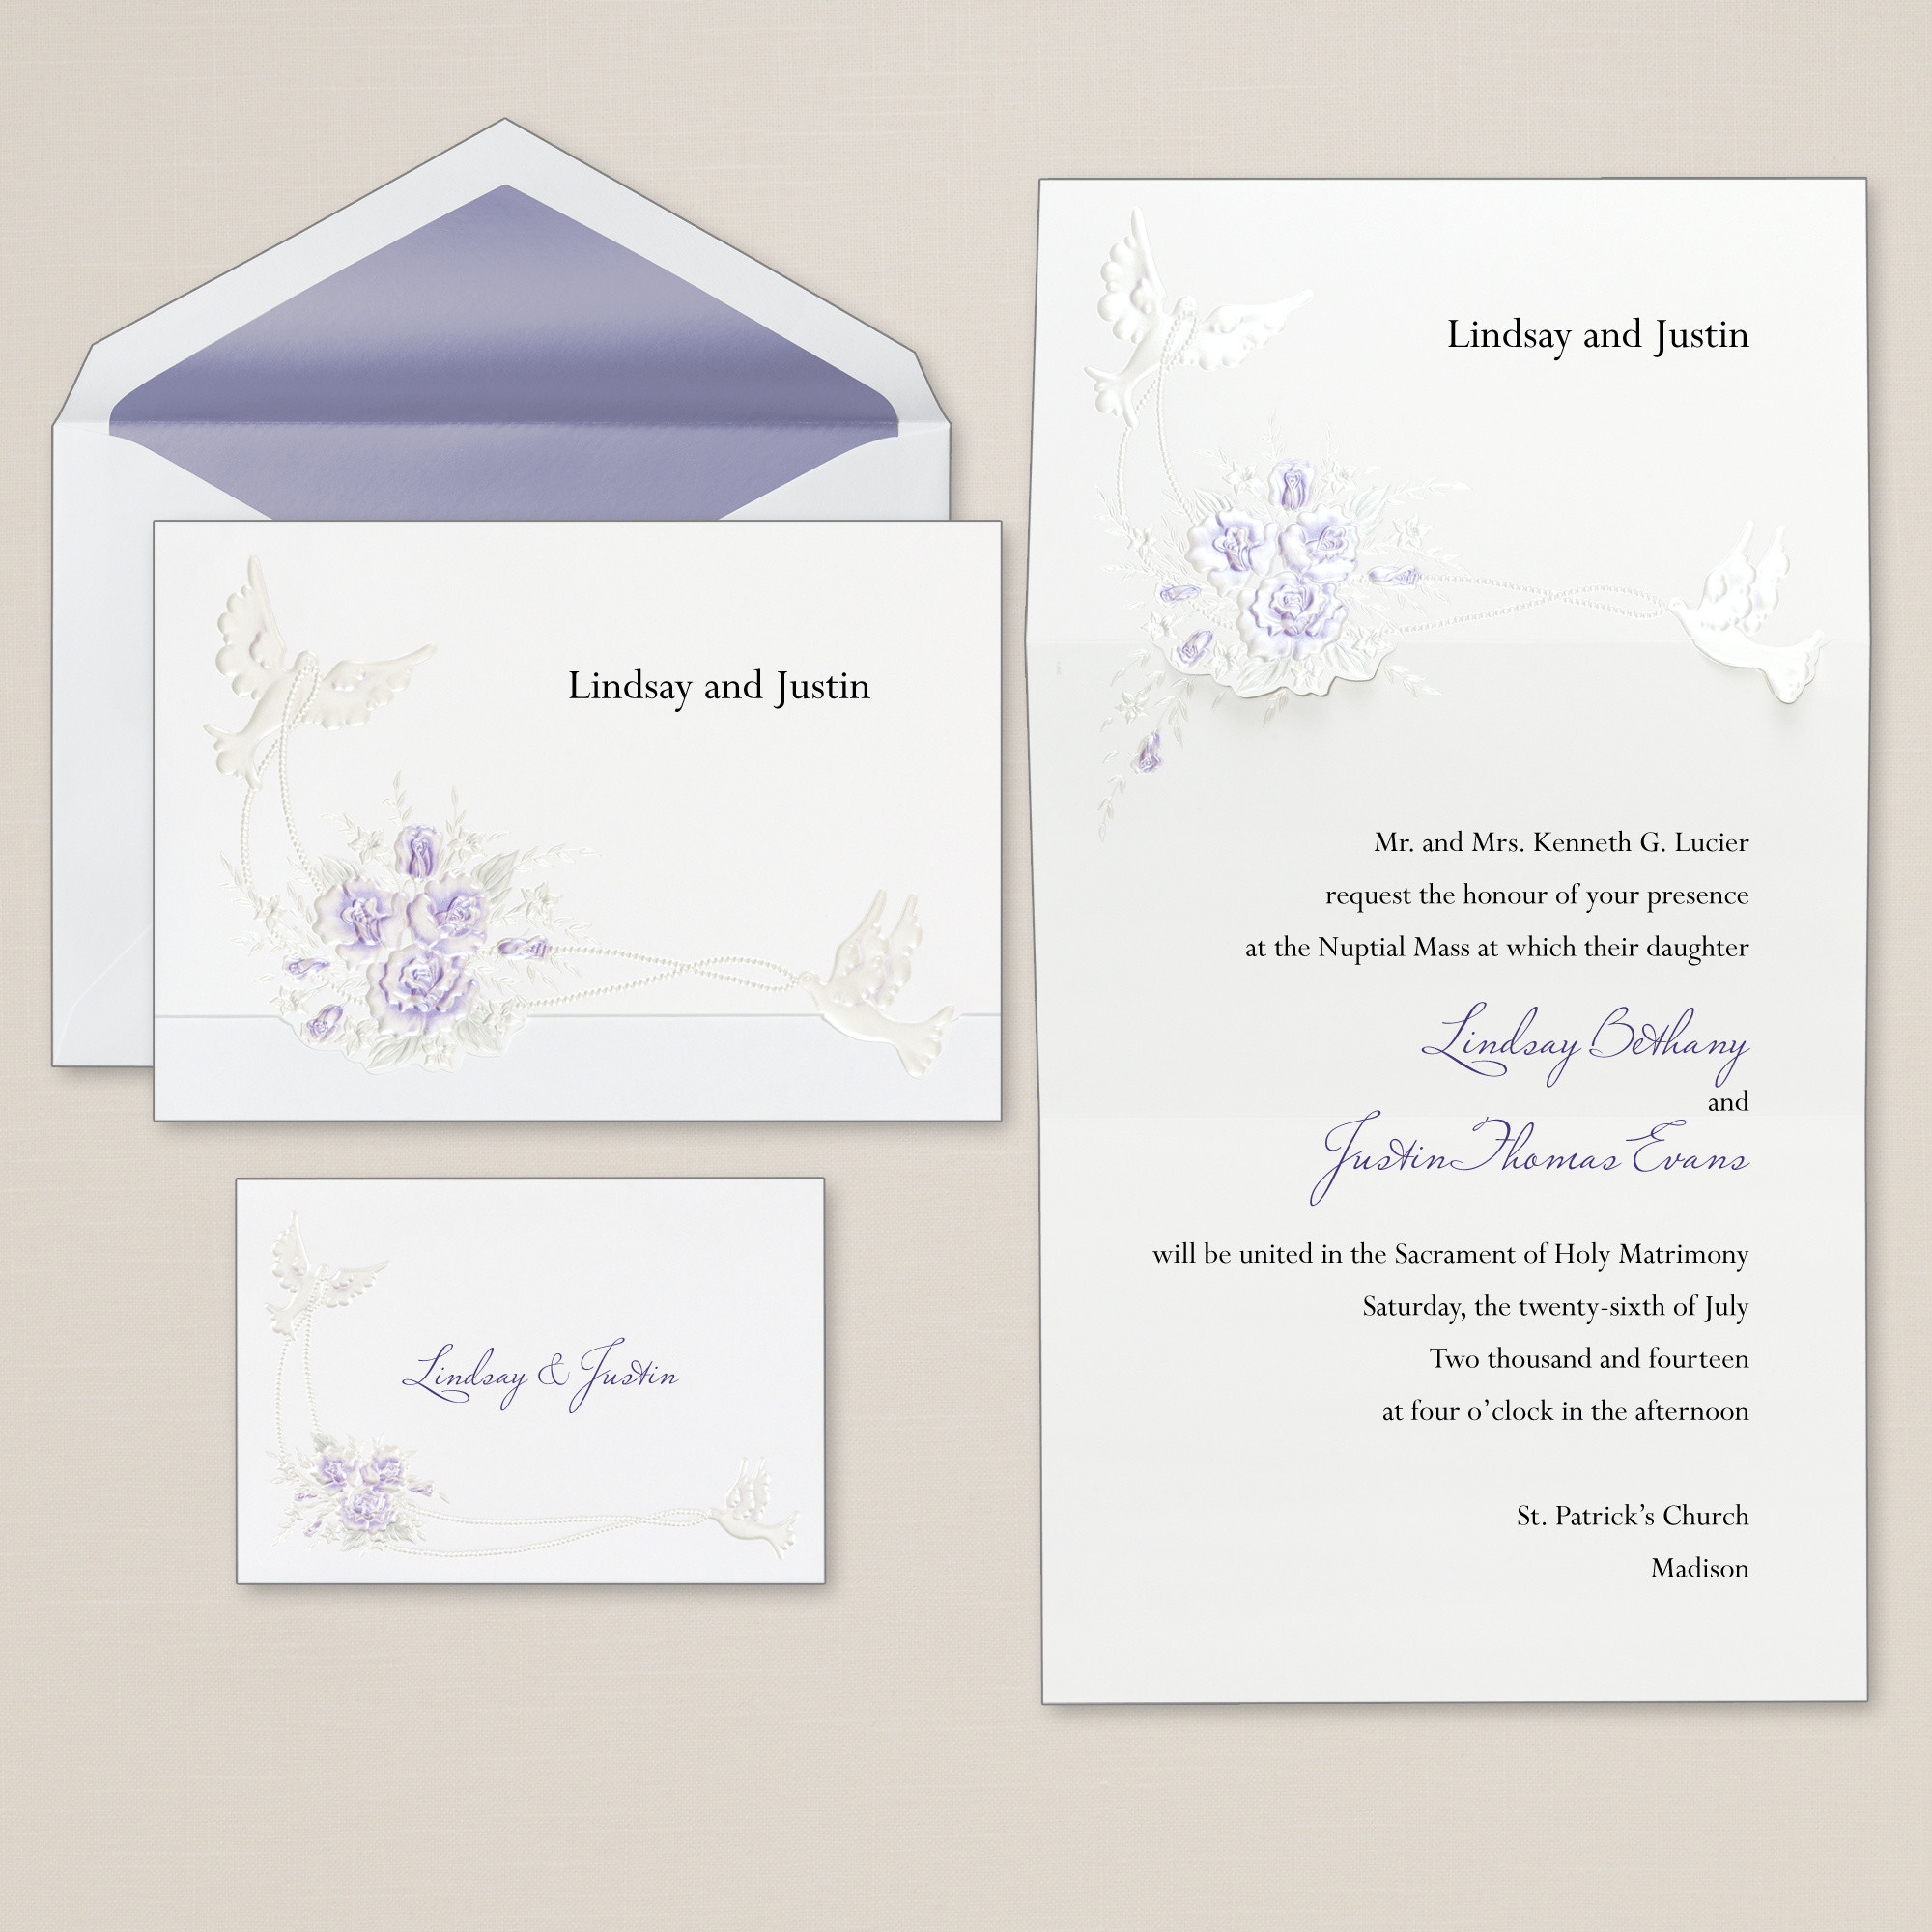 doves with roses wedding invitation floral wedding invitations - Wedding Invitation Response Card